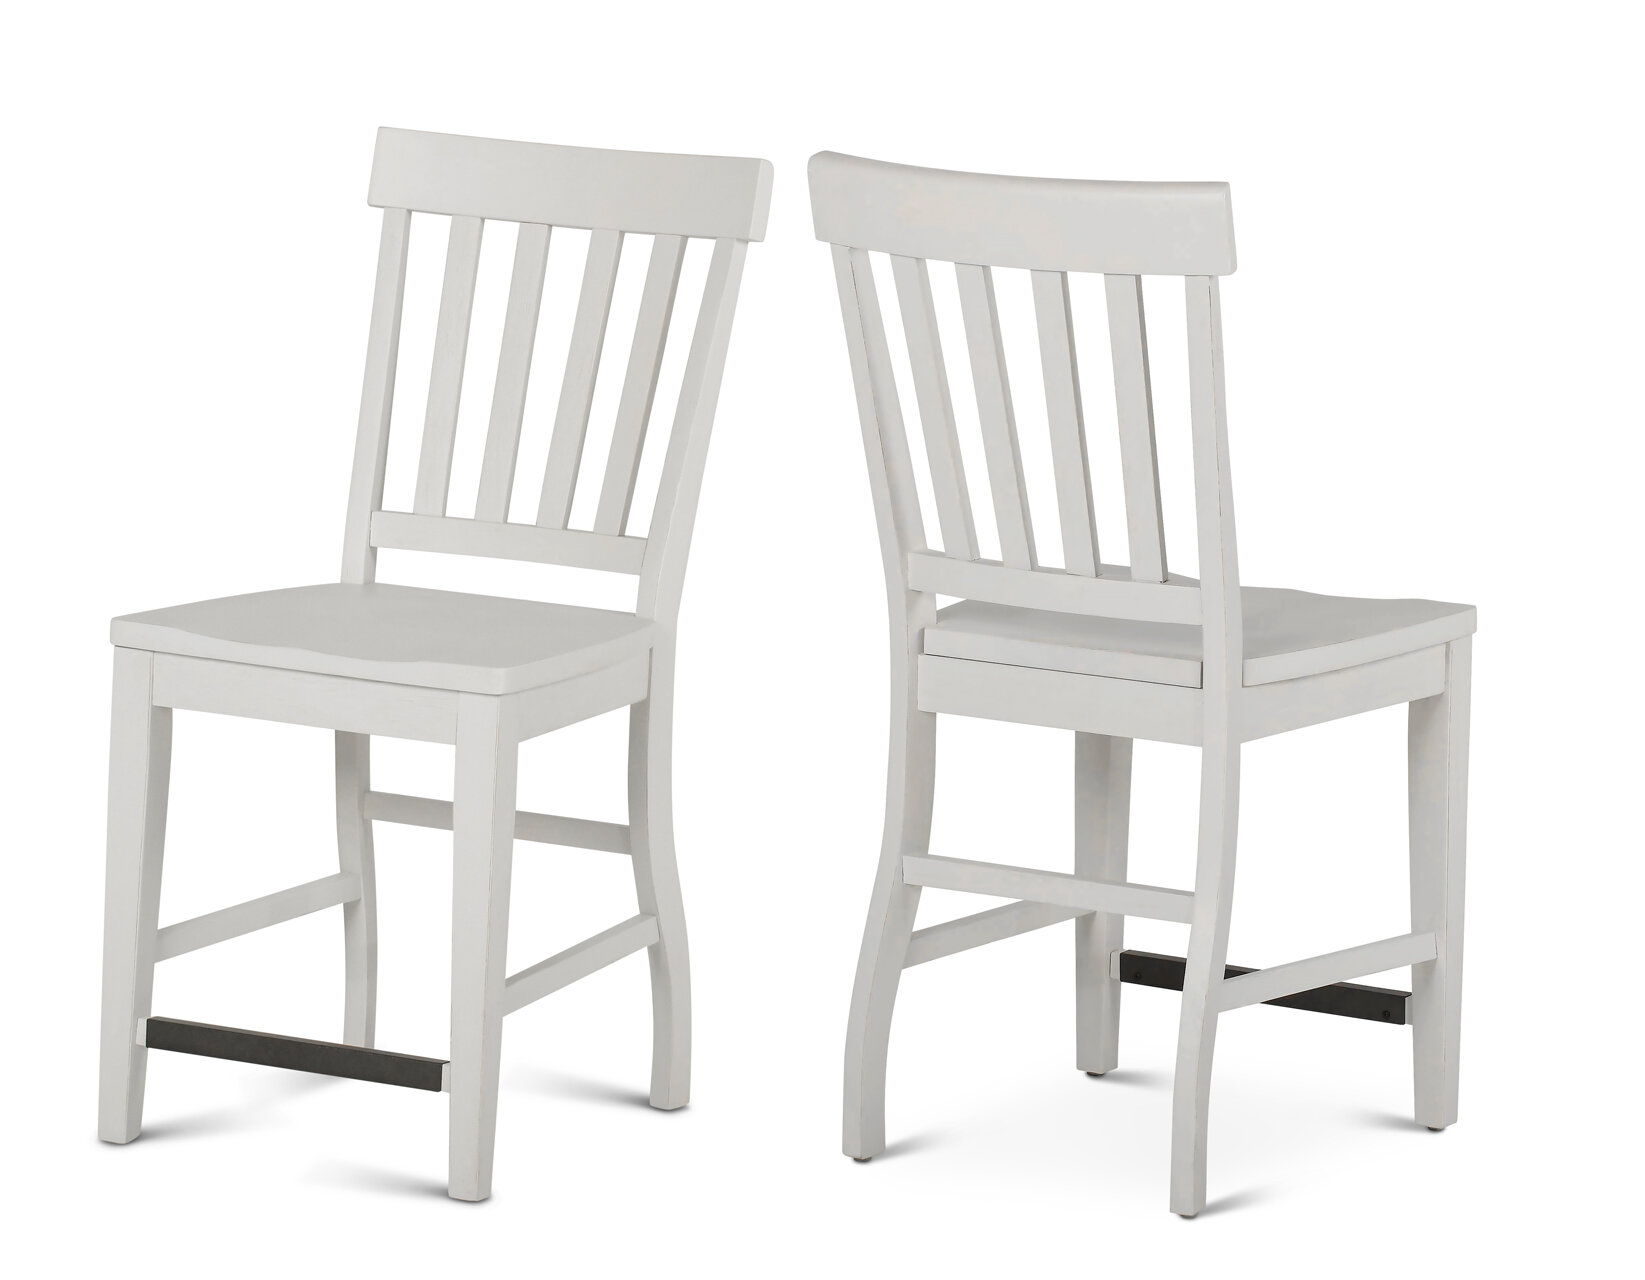 Cayla Counter Chair - White - Steve Silver